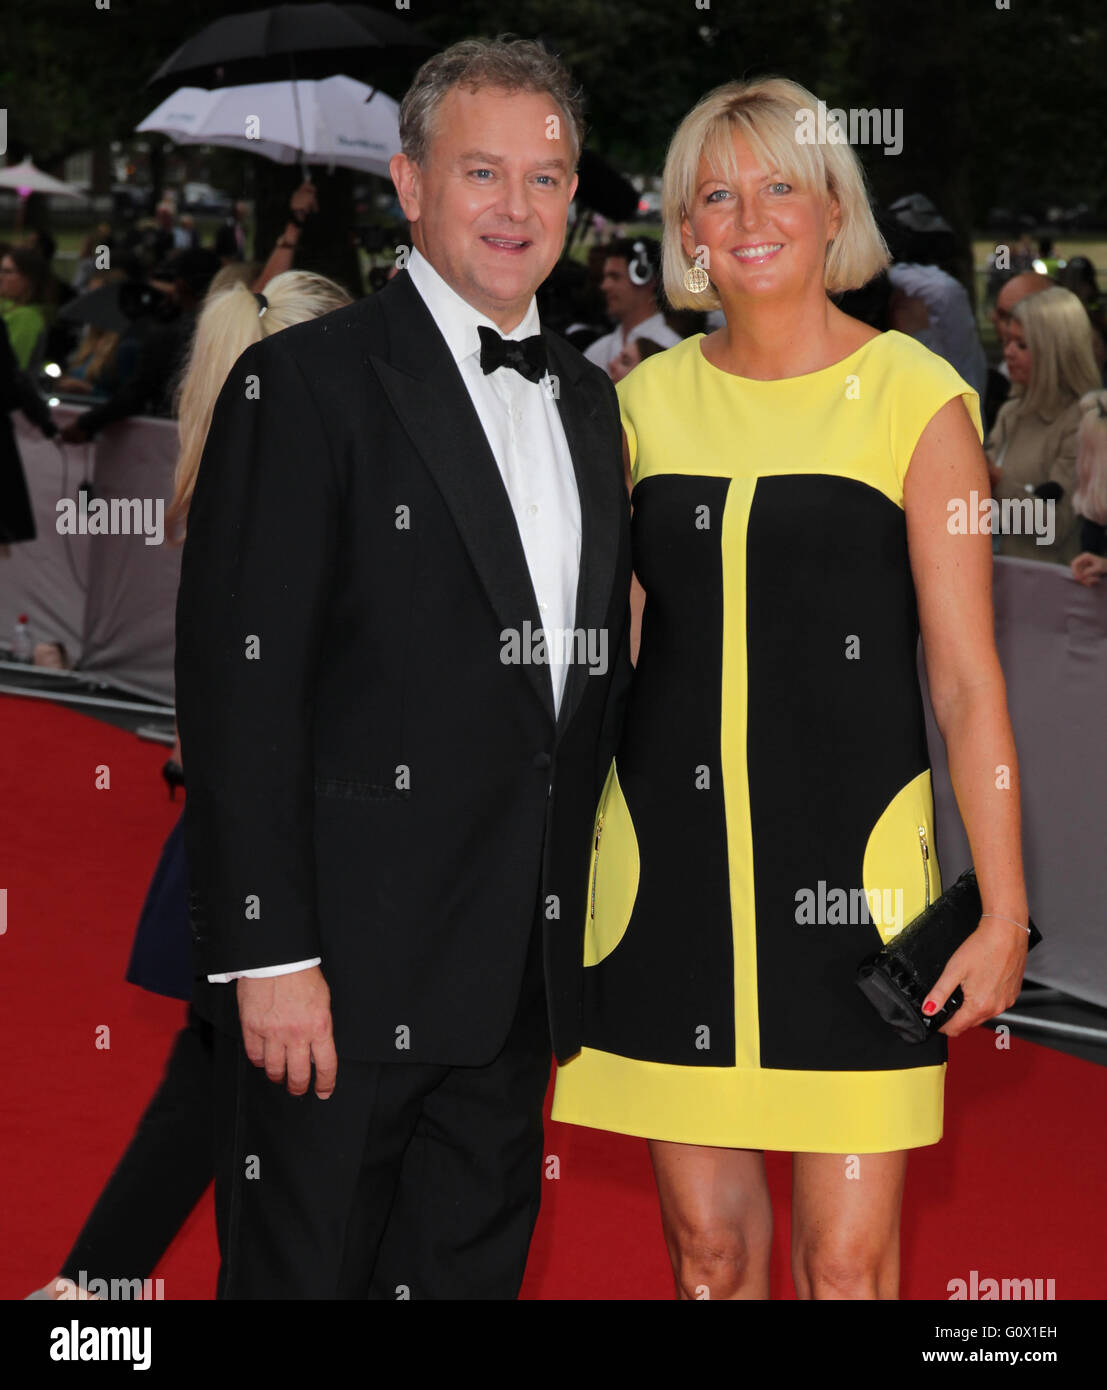 London, UK, 11th Aug 2015: Hugh Bonneville attends the BAFTA tribute to Downton Abbey in London - Stock Image